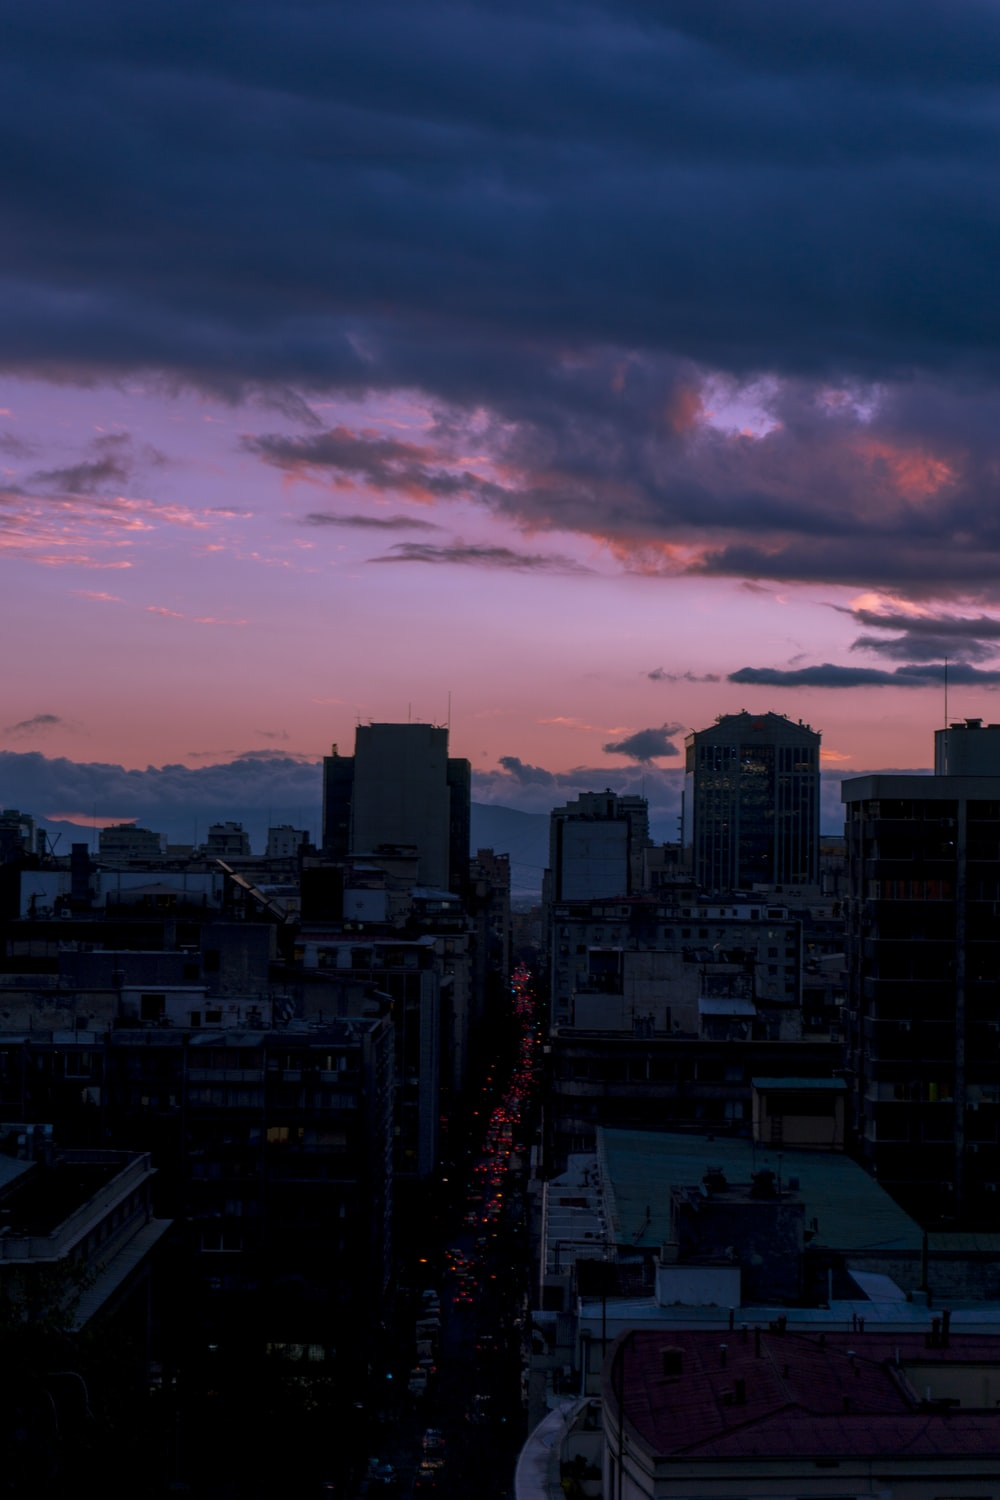 grey clouds looming above the city during sunset